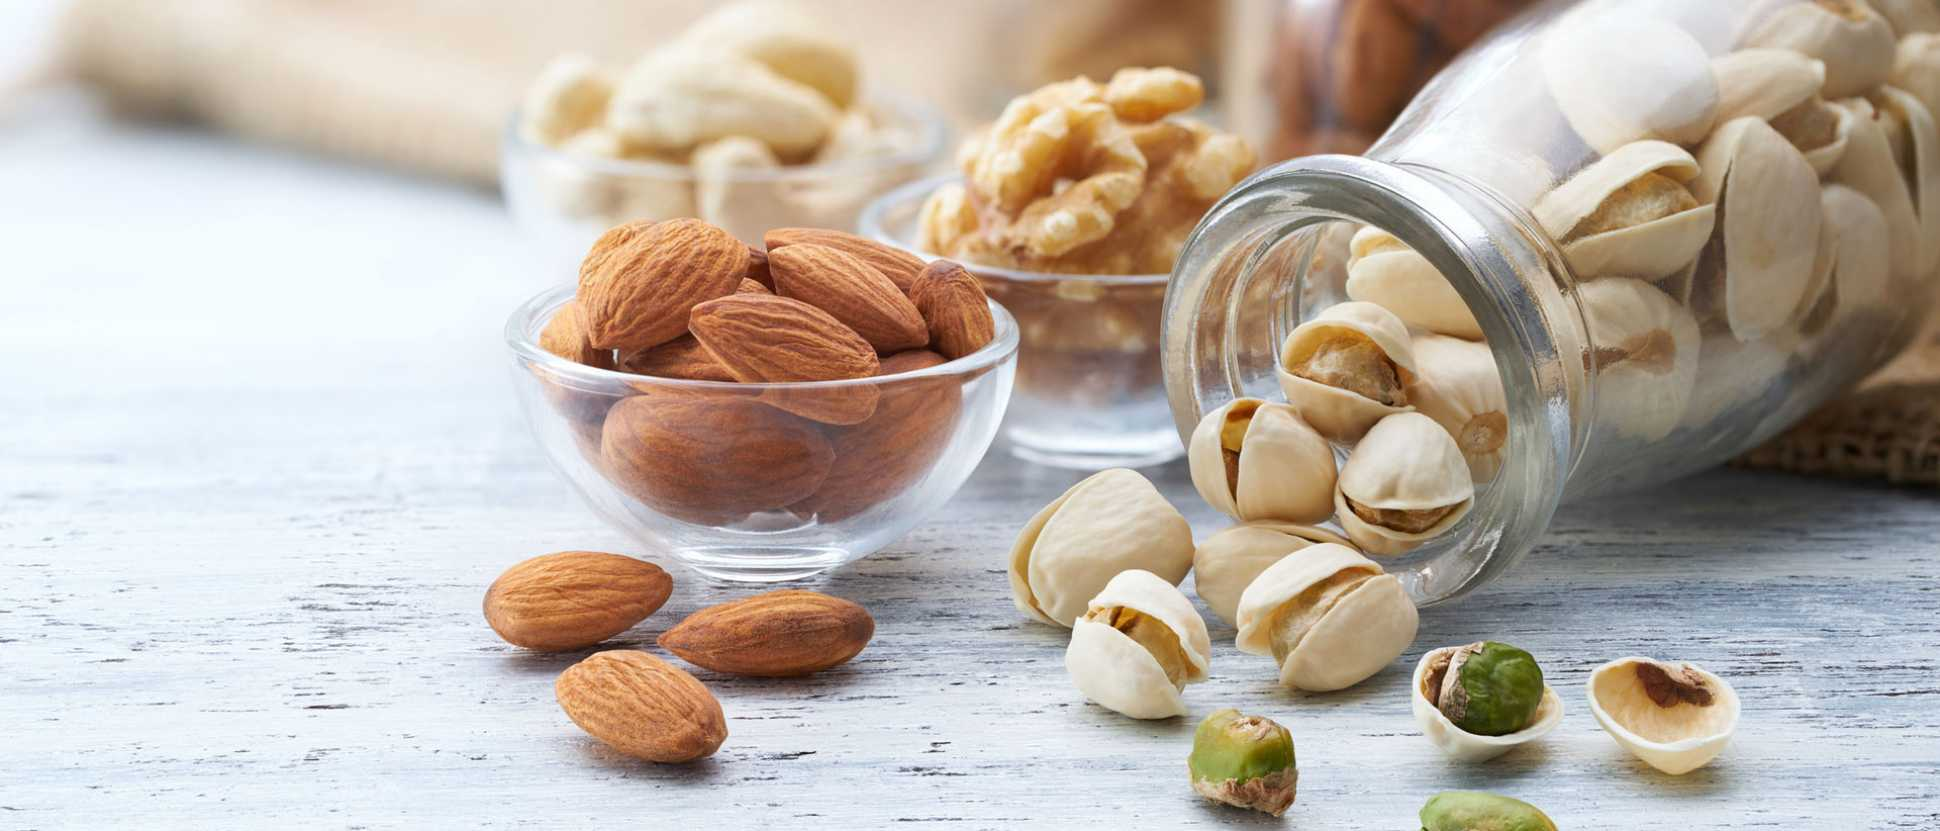 170112-Nut-consumption-reduces-risk-of-chronic-disease-and-mortalityjpg